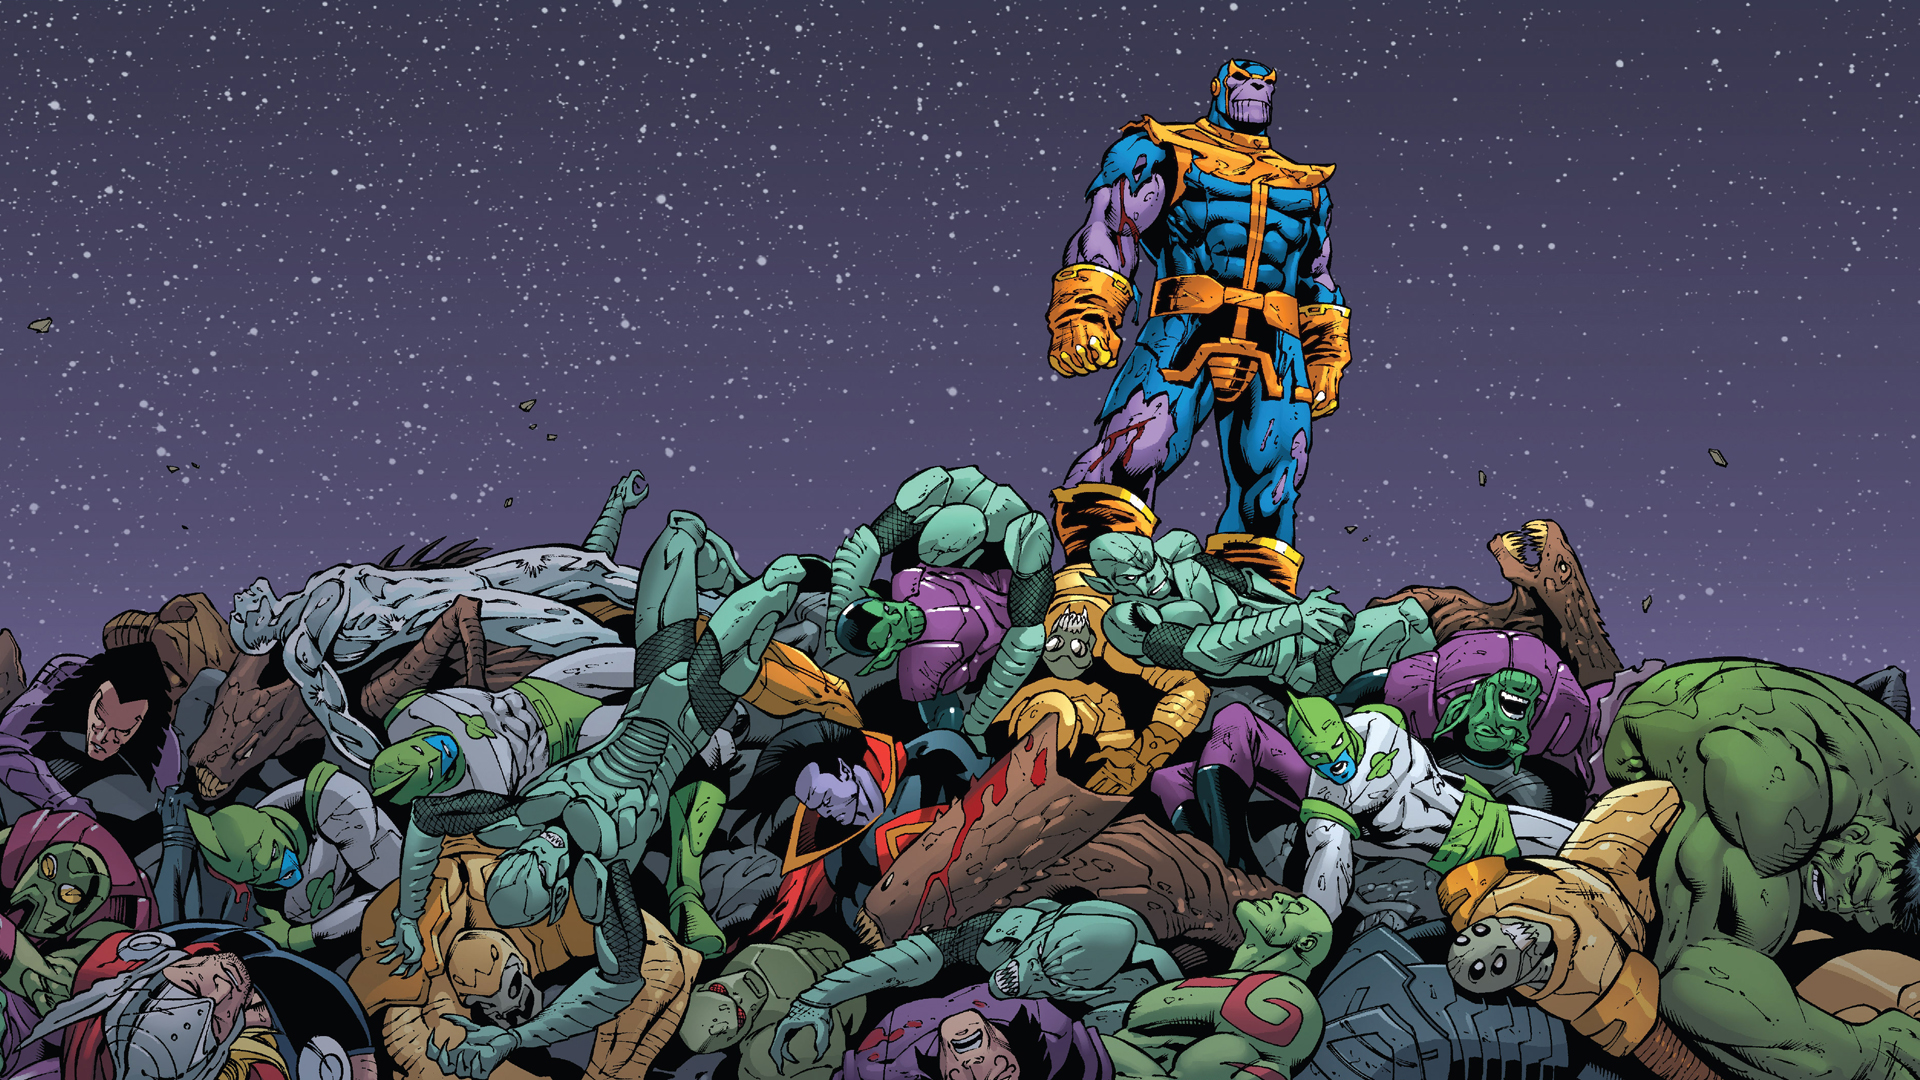 Thanos Hd Wallpapers For Desktop Download